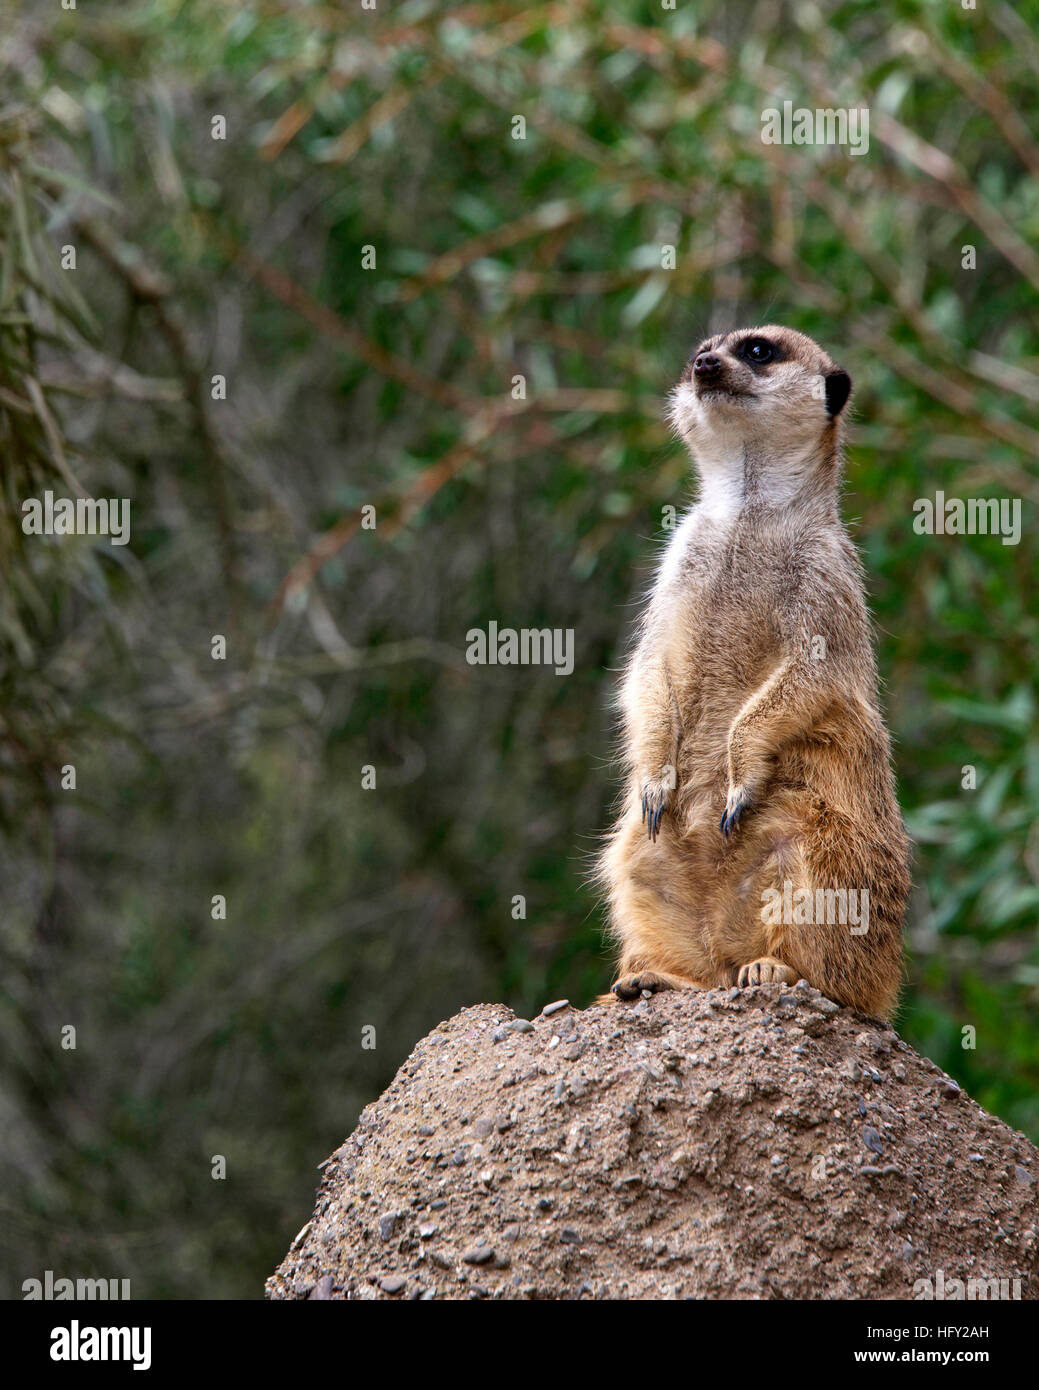 Single meerkat standing on a rock looking out for predators. Green leaves soft focus in background. - Stock Image